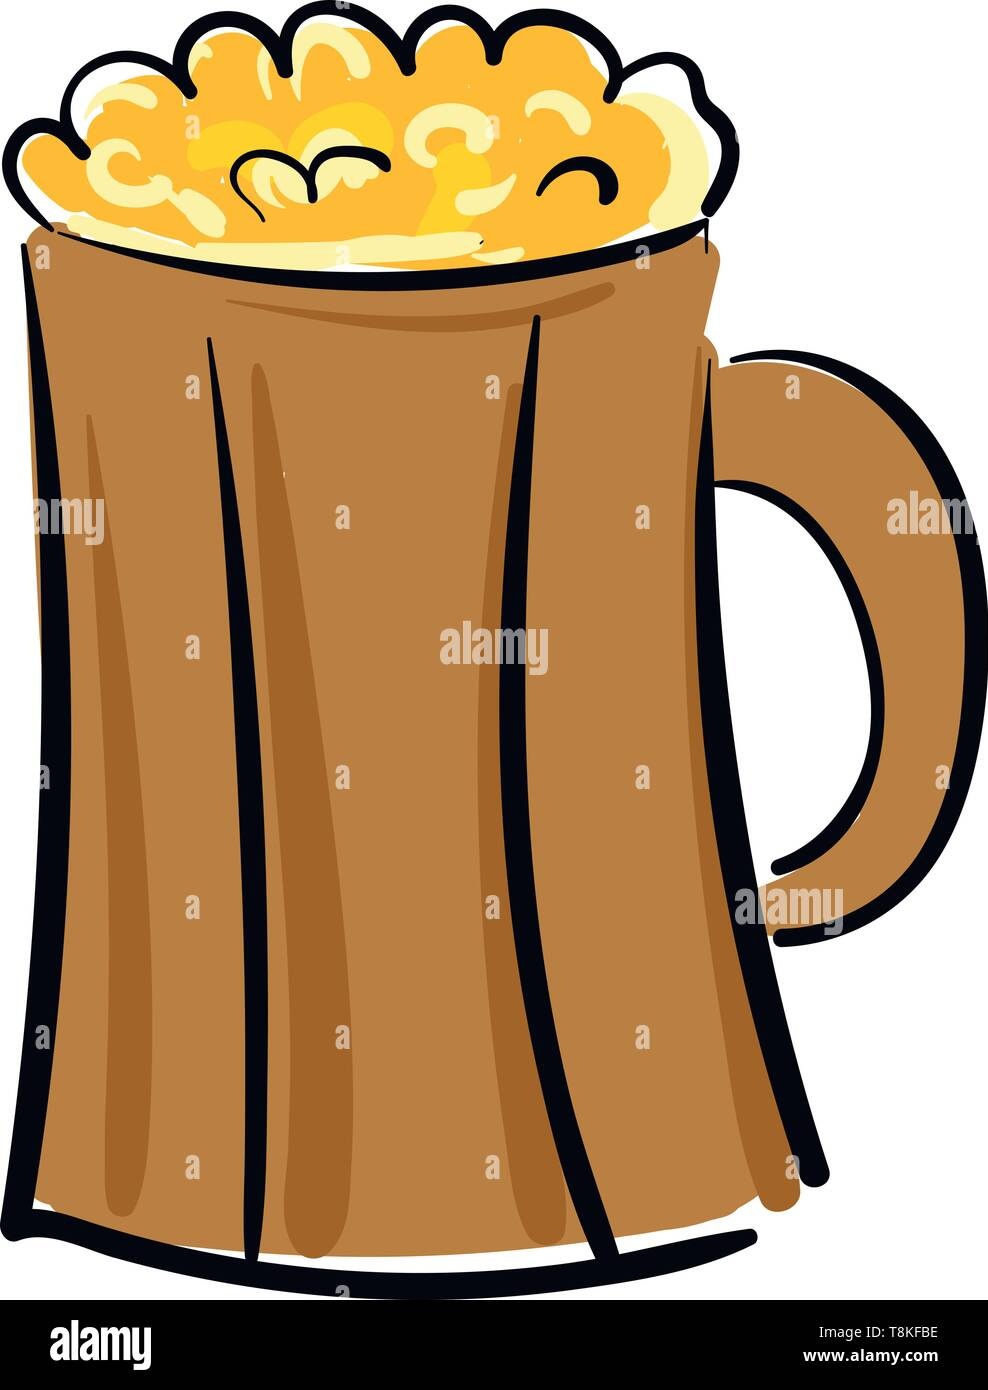 Beer is an alcoholic drink made from grain and hops., vector, color drawing or illustration. Stock Vector